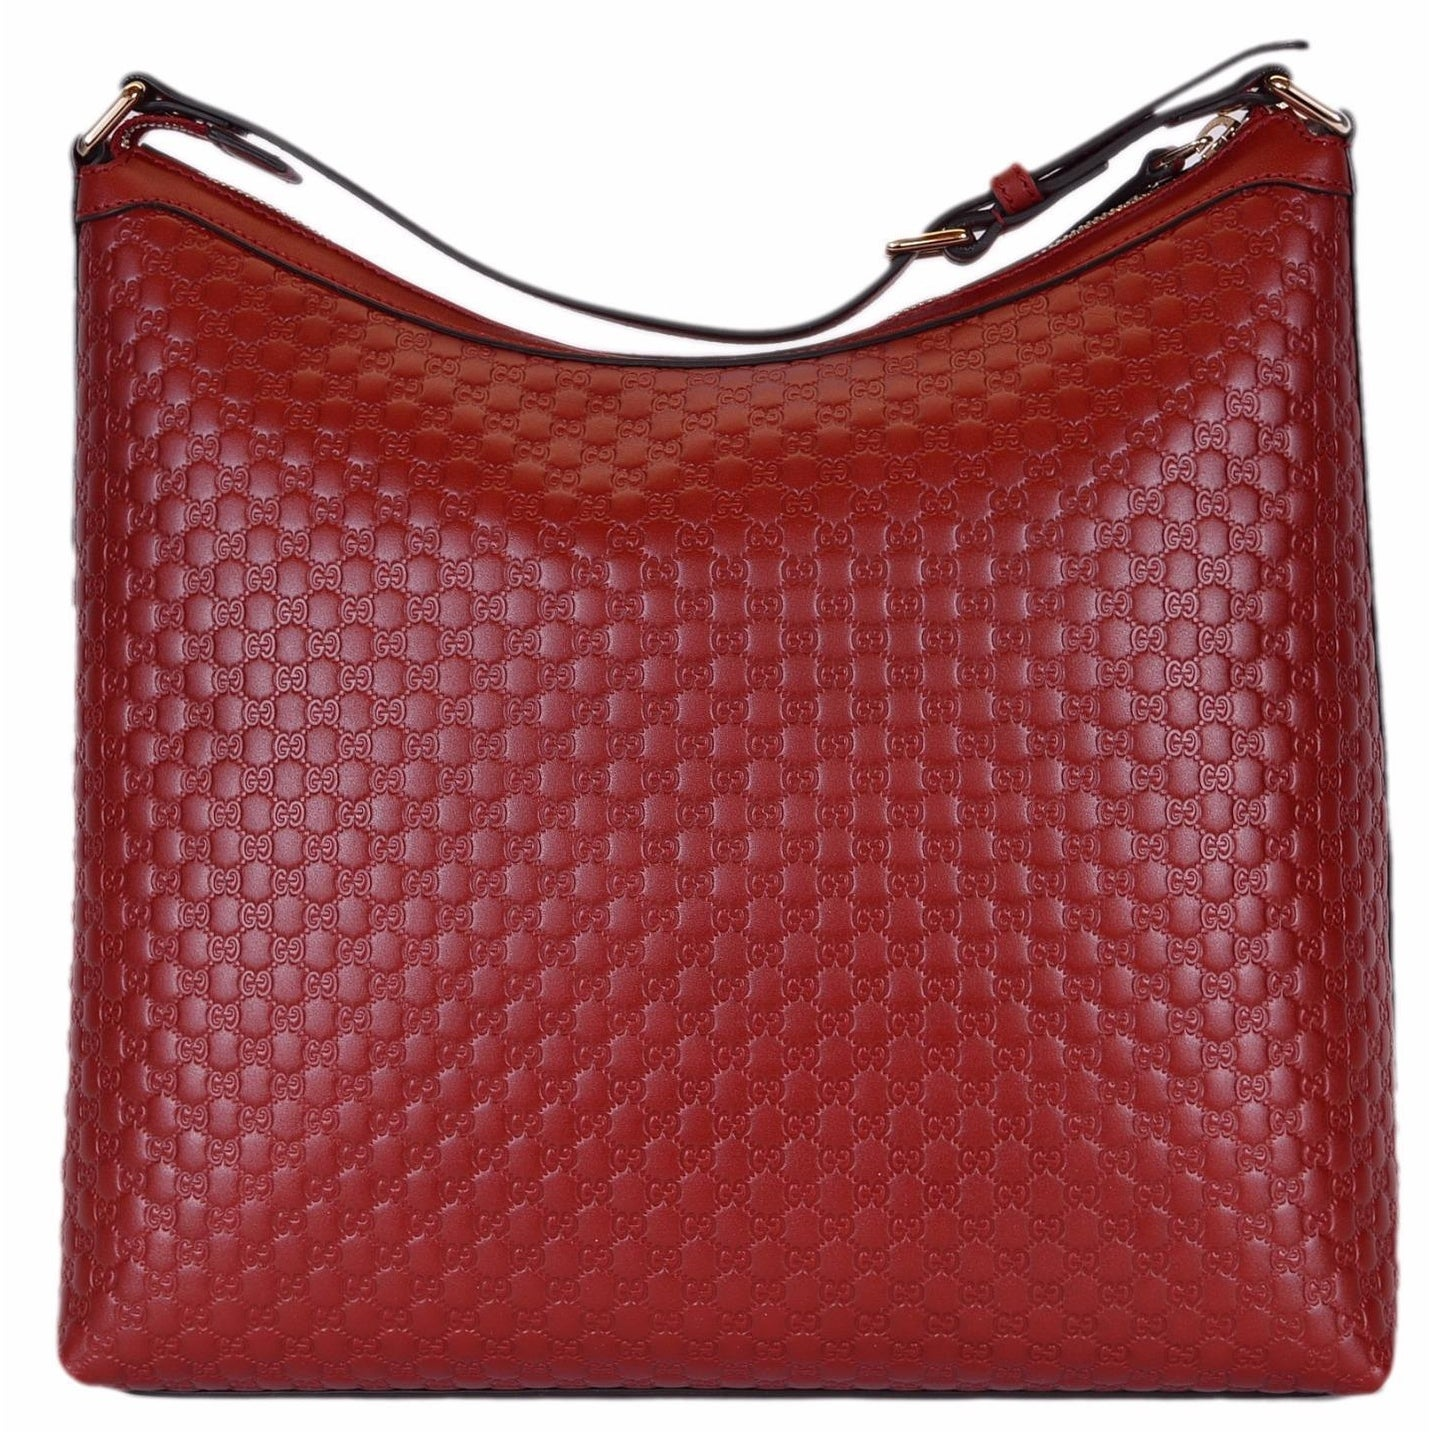 New Gucci 449732 Red Micro Gg Guccissima Leather Purse Hobo Handbag 13 5 X Free Shipping Today 17909261